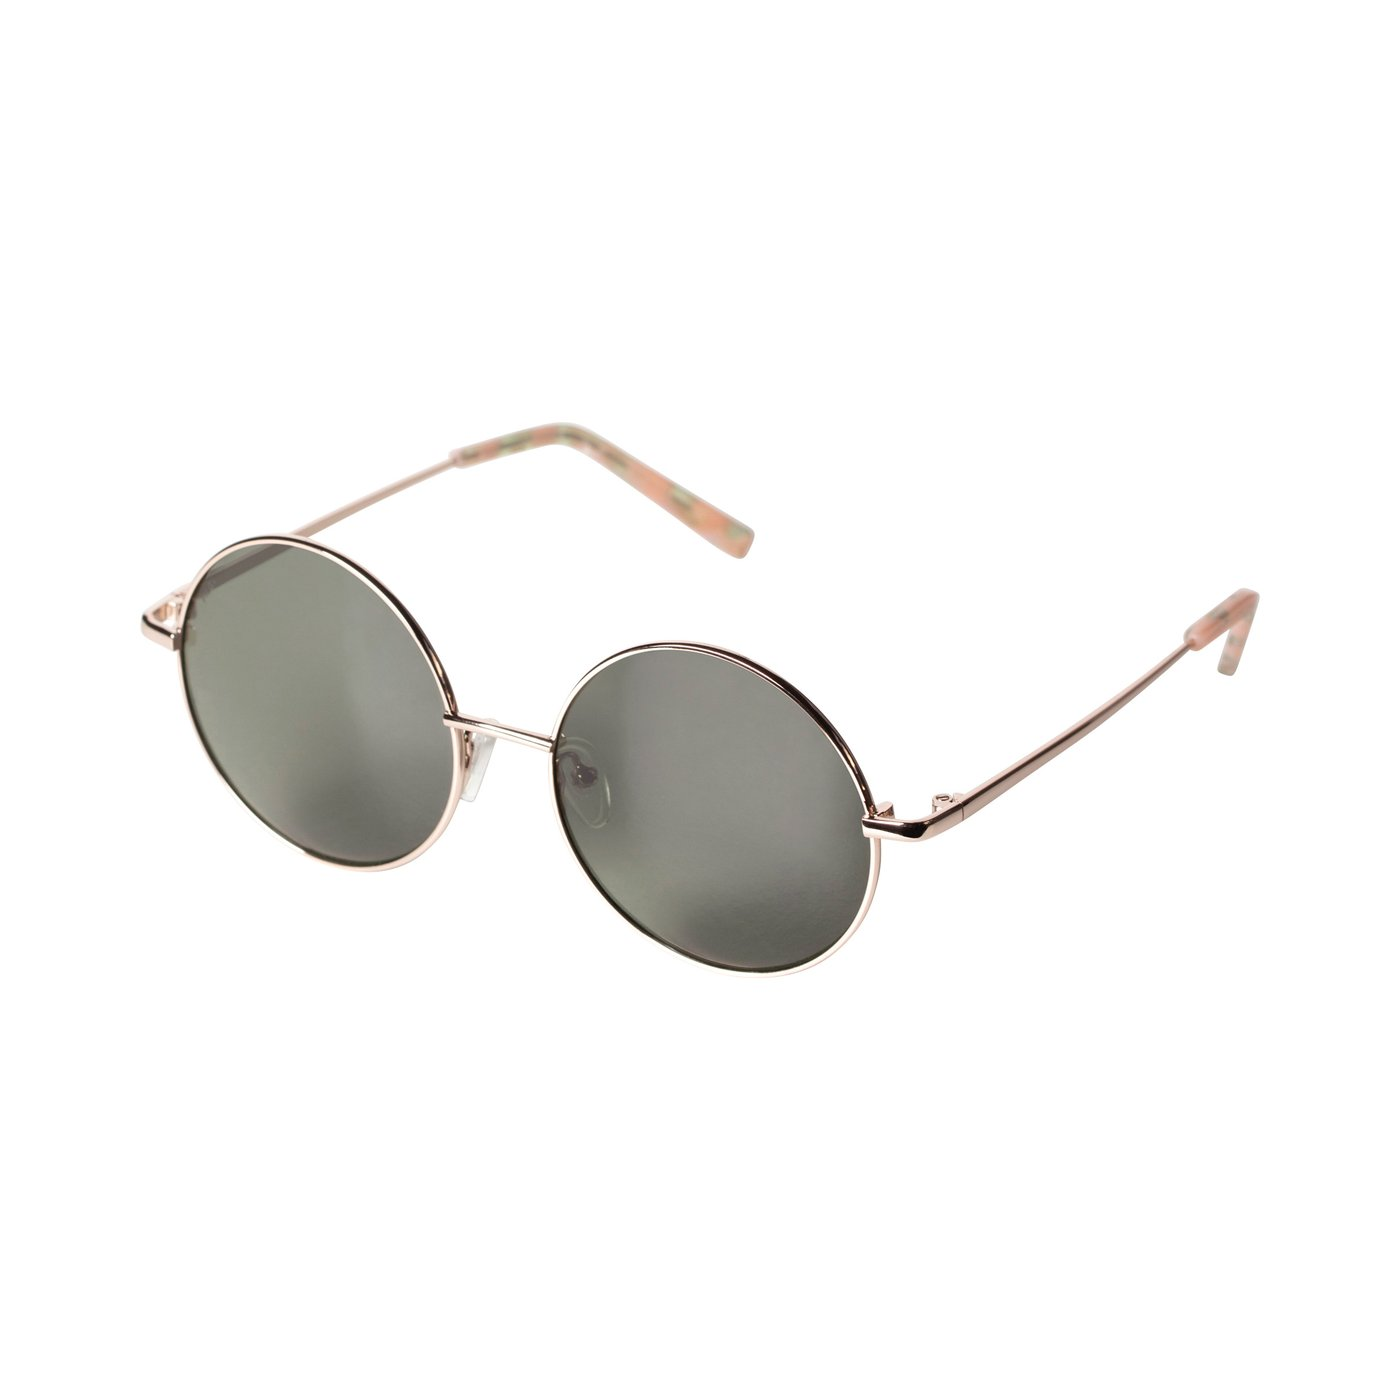 SALE Polly Gold Plated Sunglasses Green